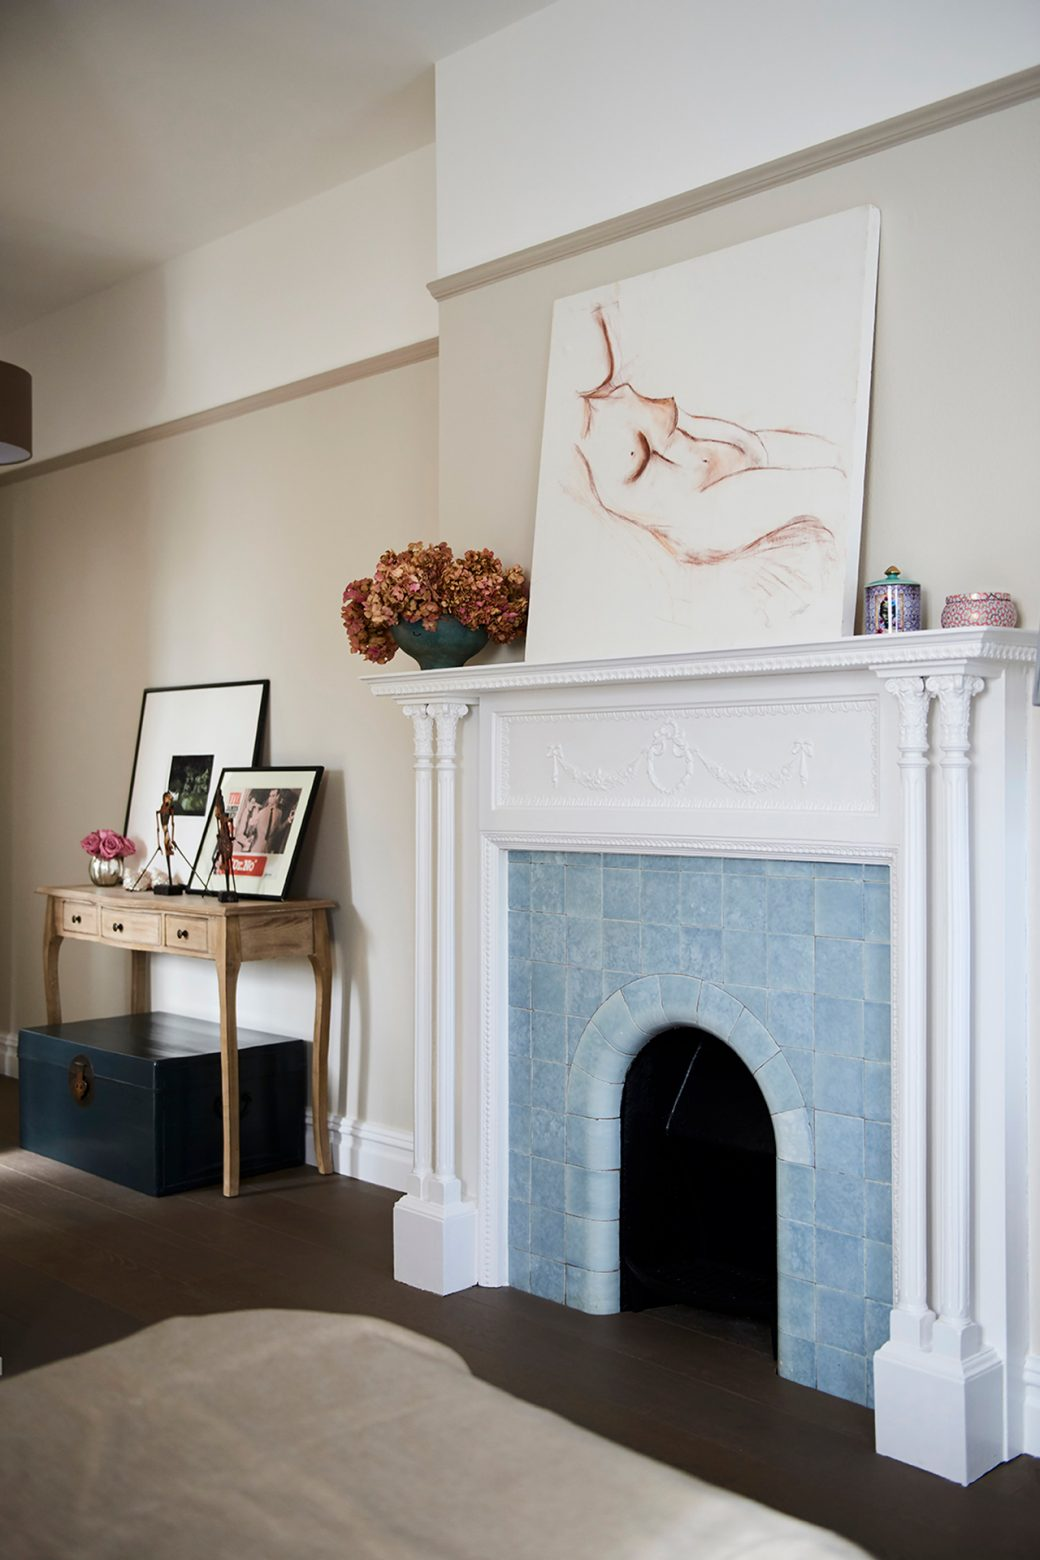 Fireplace in bedroom with blue tiles